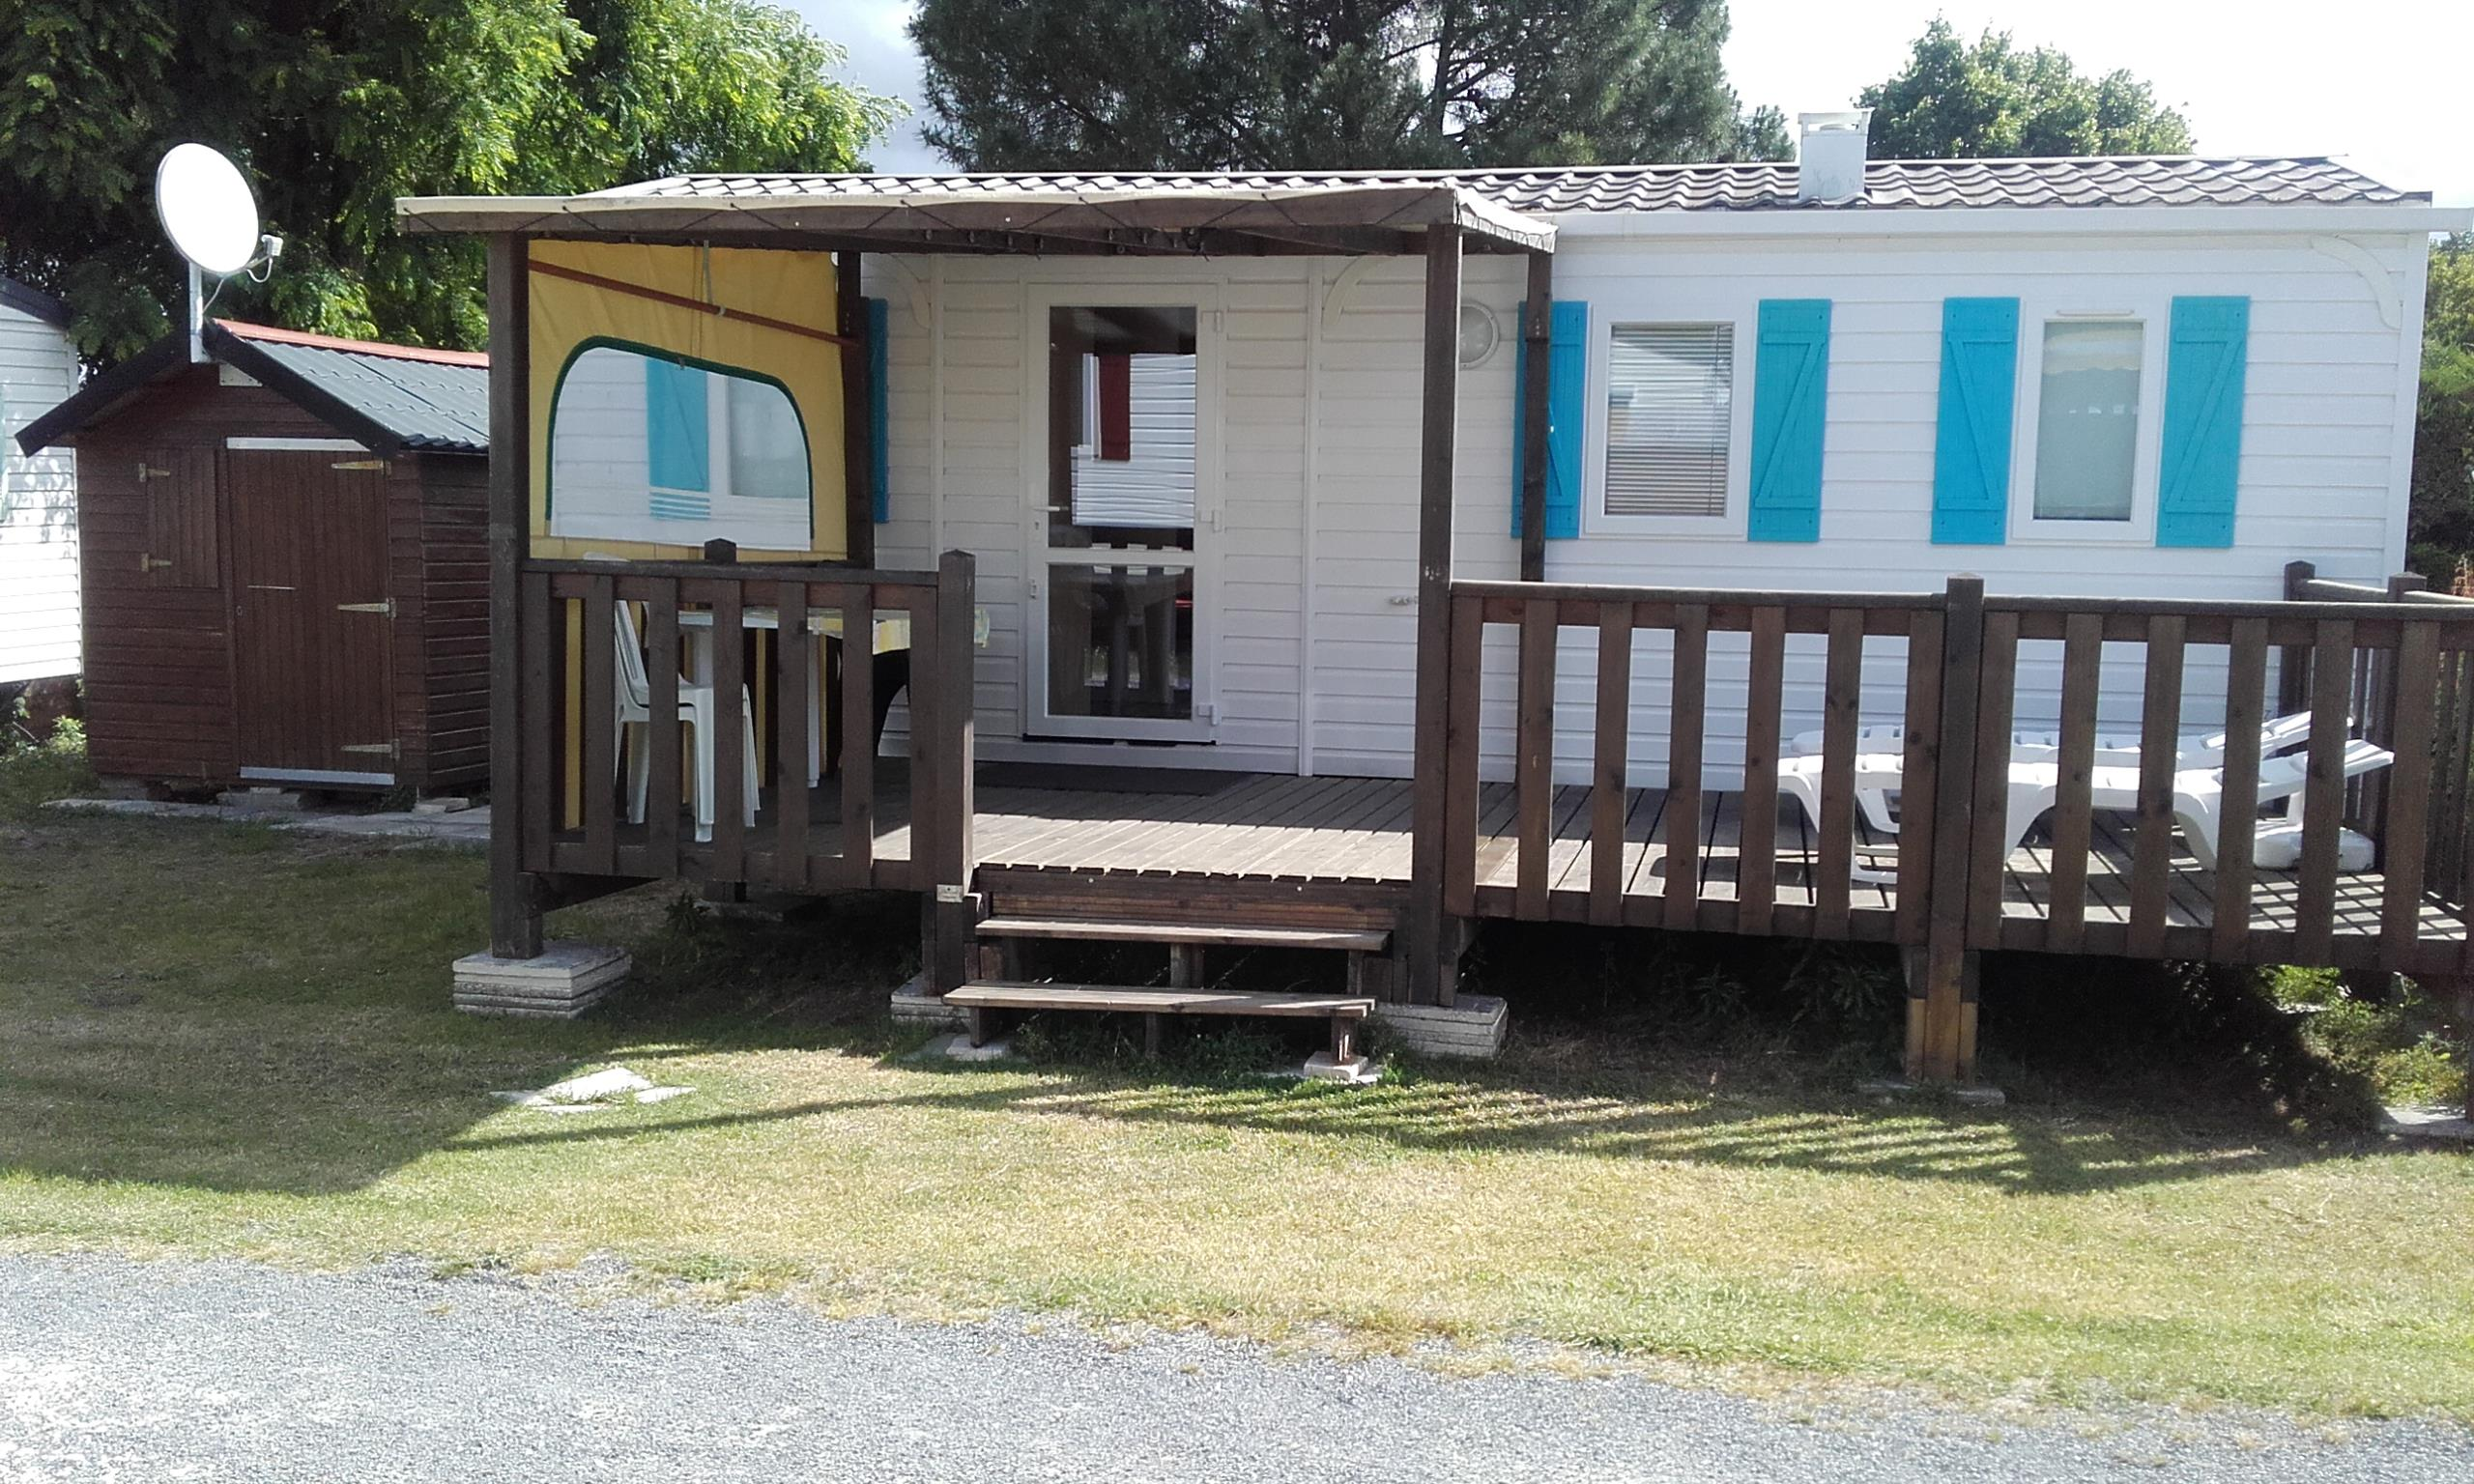 Location - Mobilhome 2 Chambres N°46 - Terrasse En Bois Couverte - Camping Le Repaire